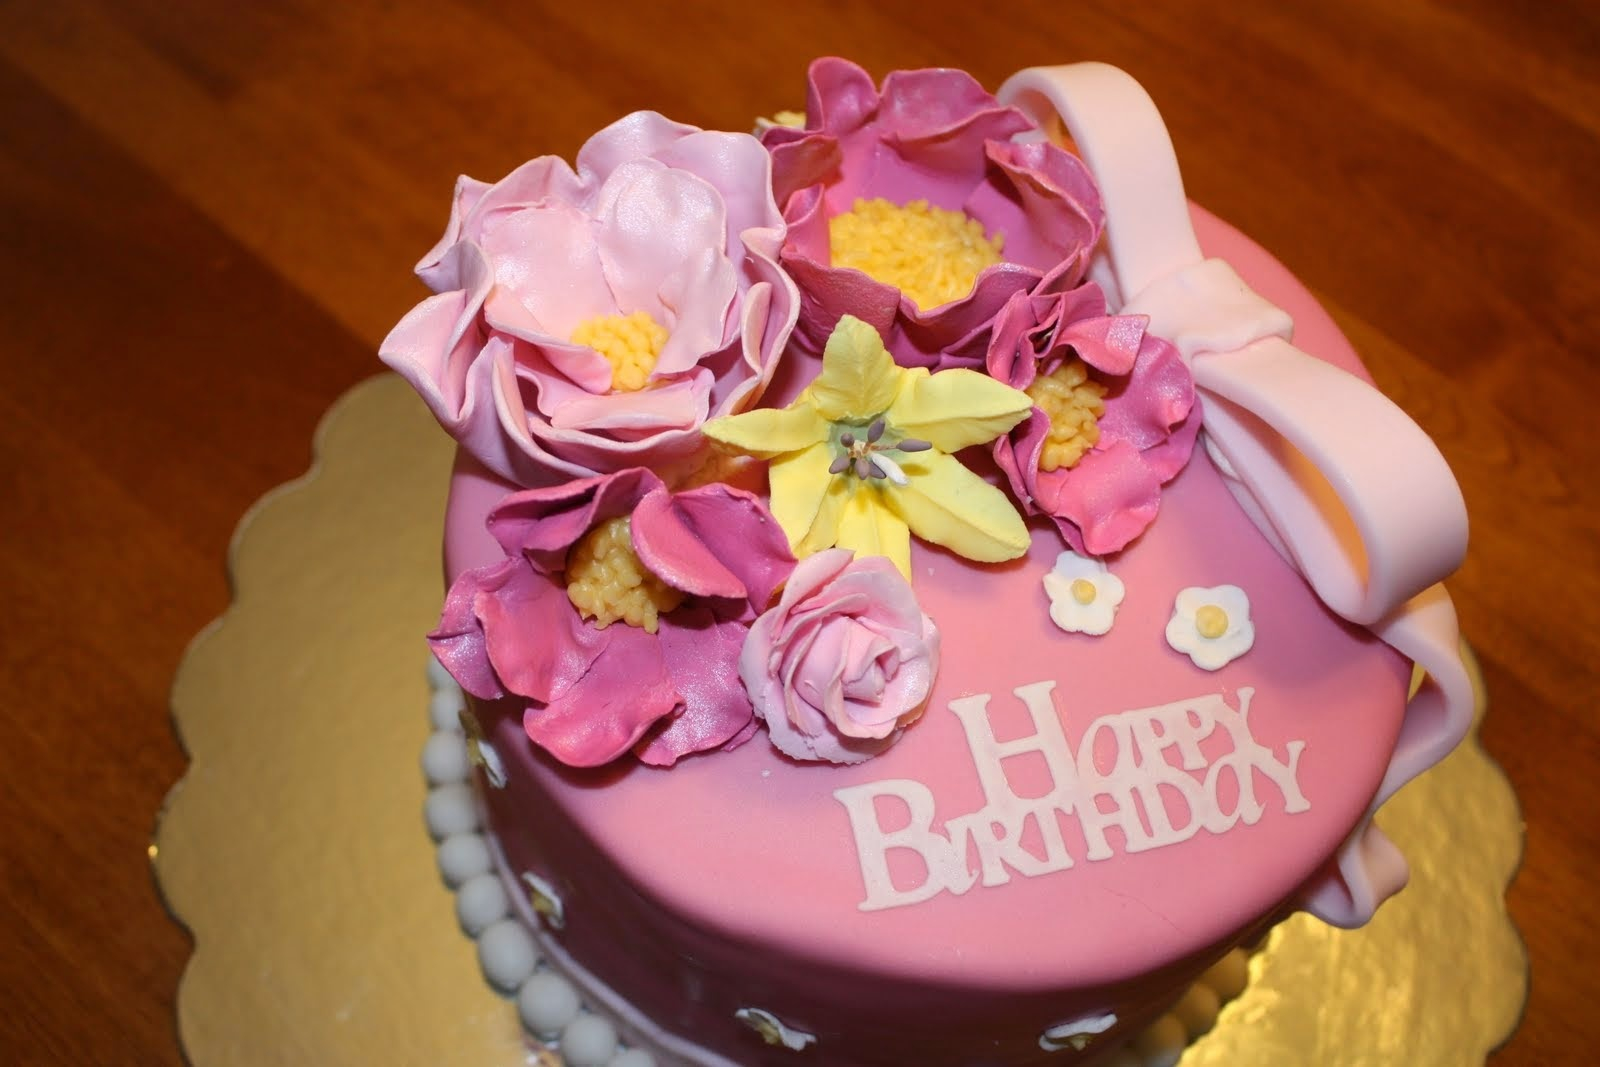 Happy Birthday Cake And Flowers Images Flowers Page 5 Of 39 Cakes And Cupcakes Inspiration